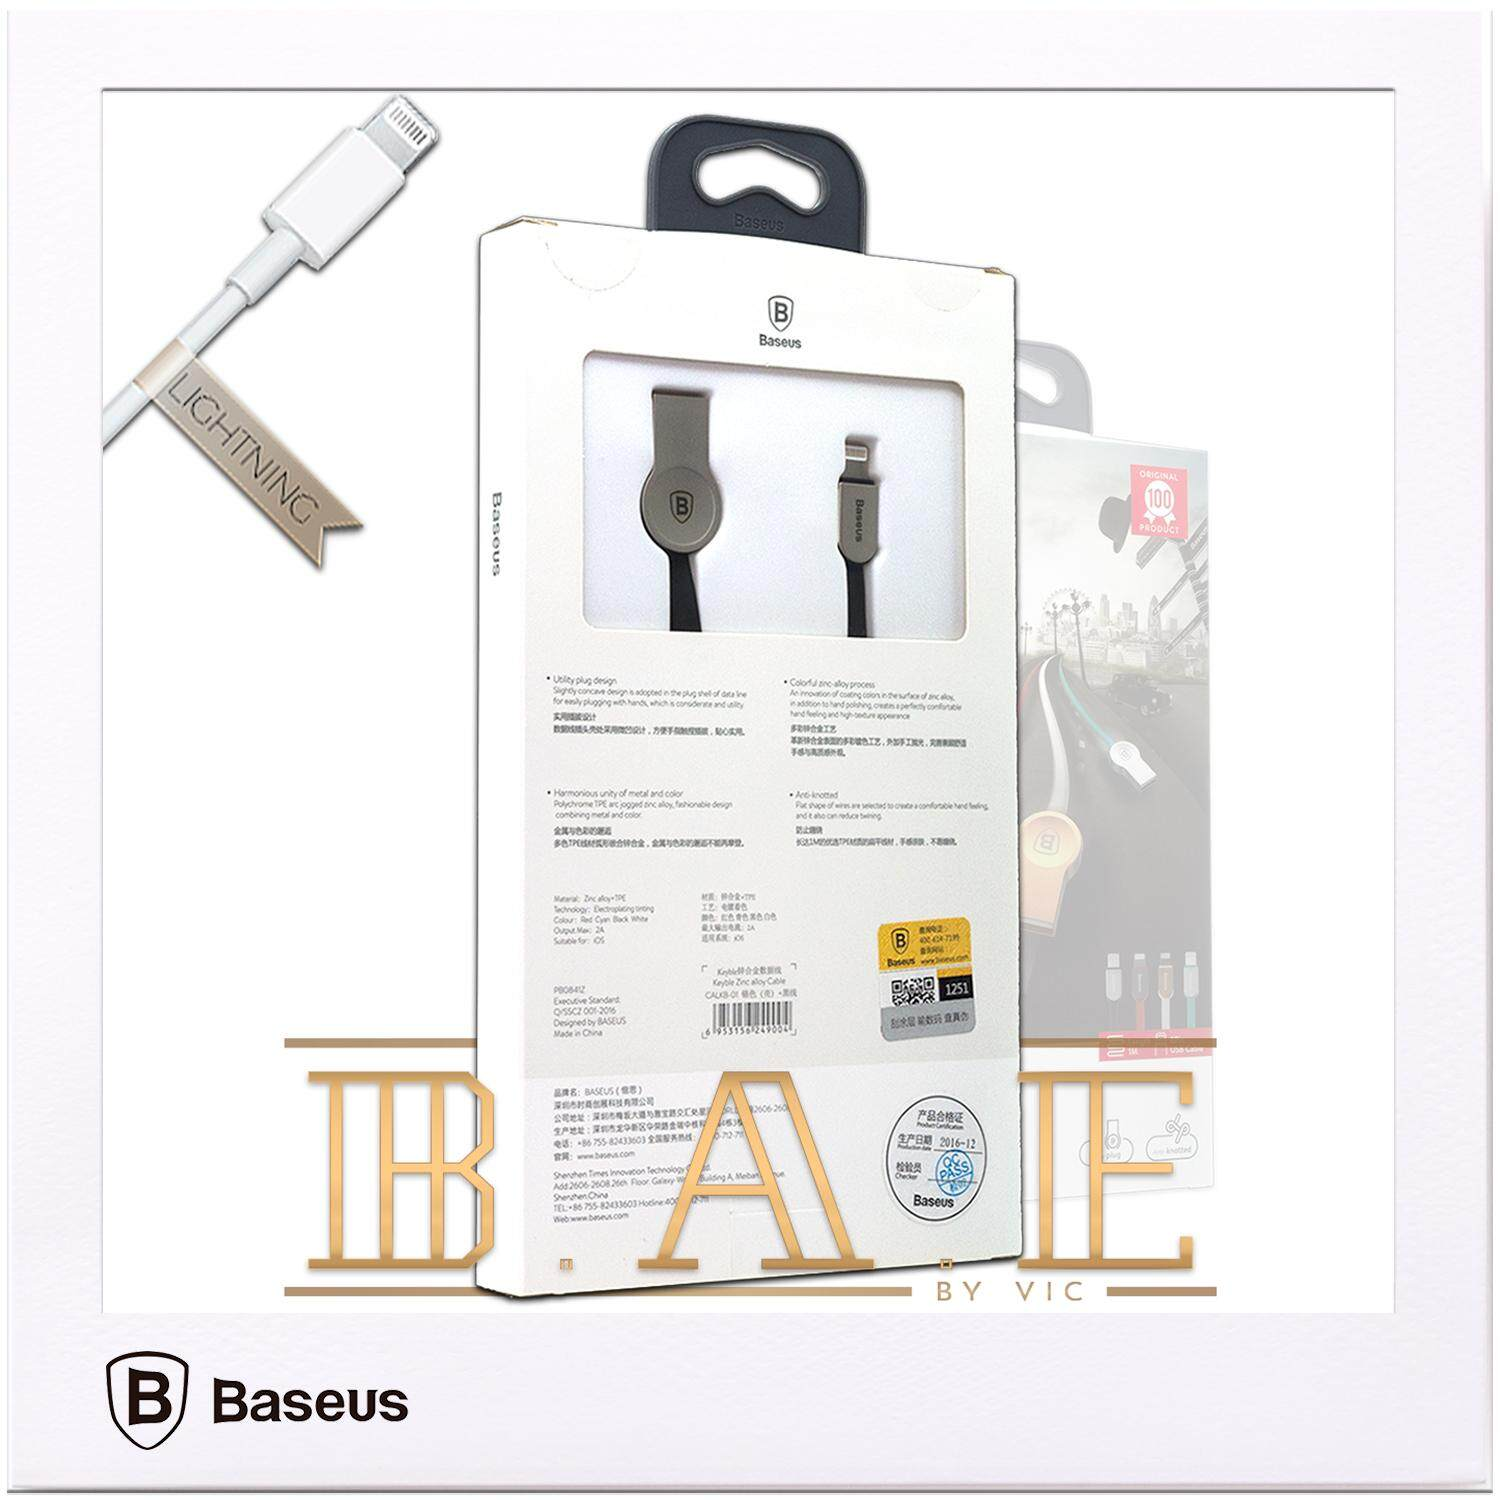 Sell Baseus 1 5m Cheapest Best Quality My Store Rapid Series 3 In Micro Usb Lightning Type C 3a 12m Myr 8